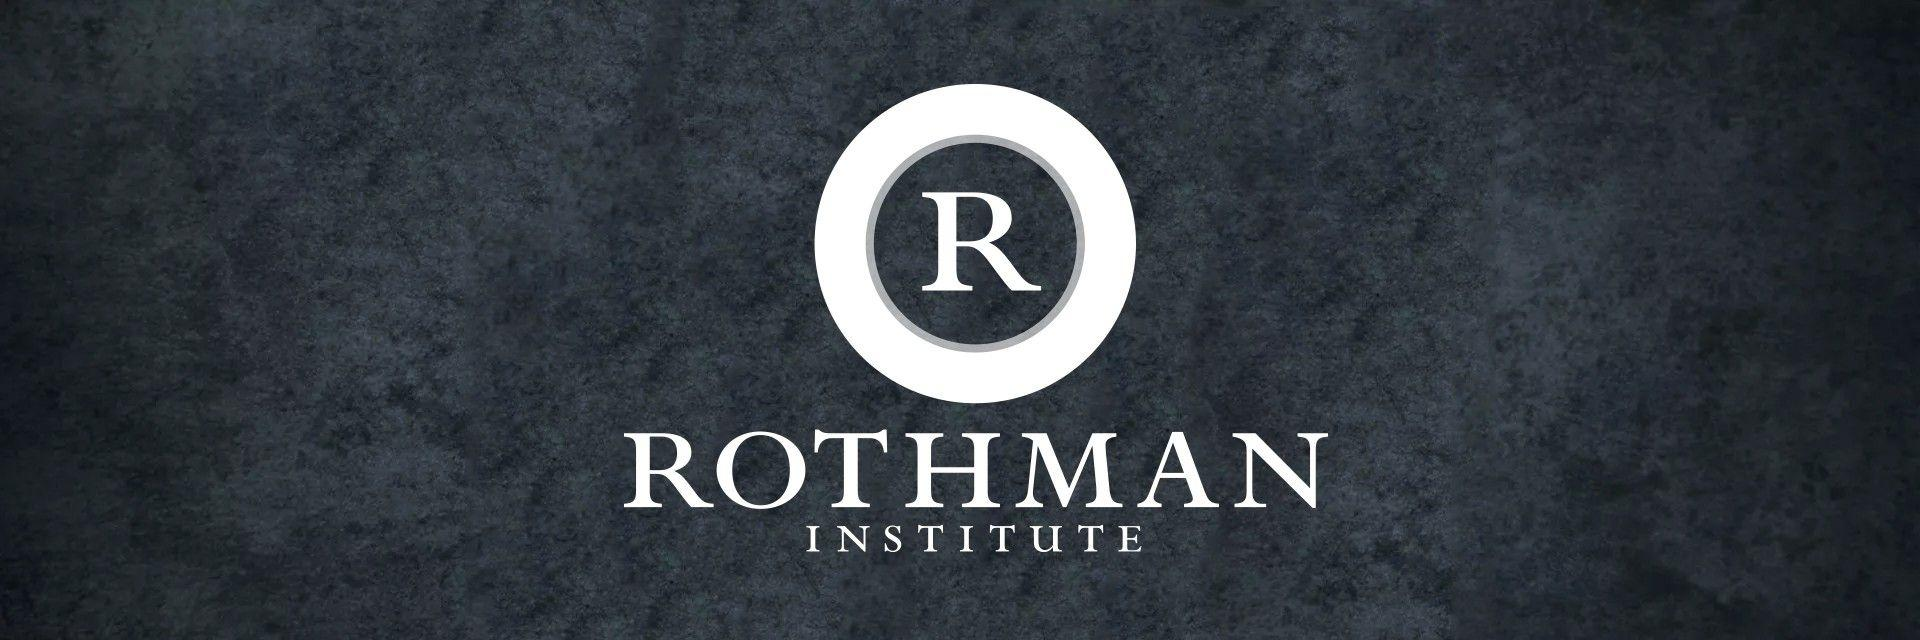 Rothman Institute announces affiliation agreement with North...